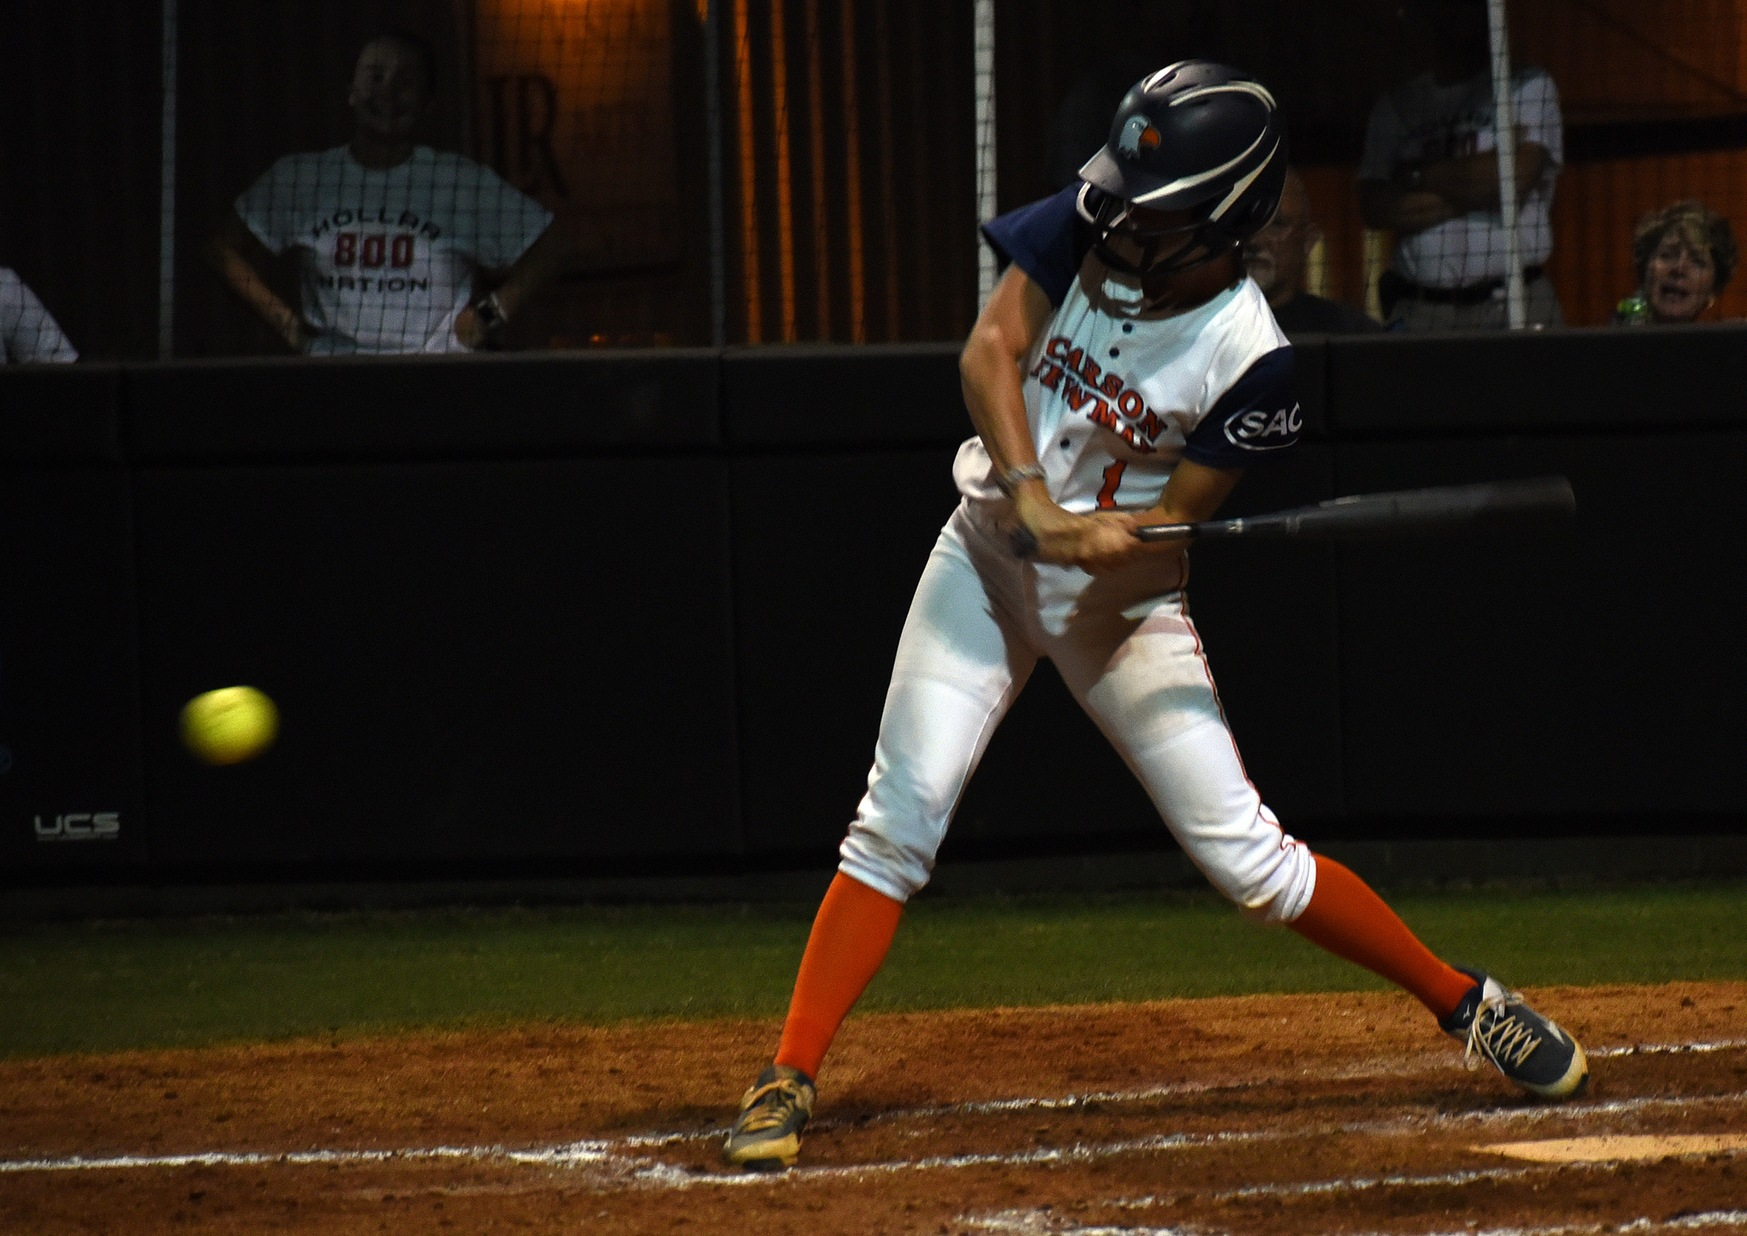 Southeast Regional rematch set for softball in Hickory against league-leading Bears